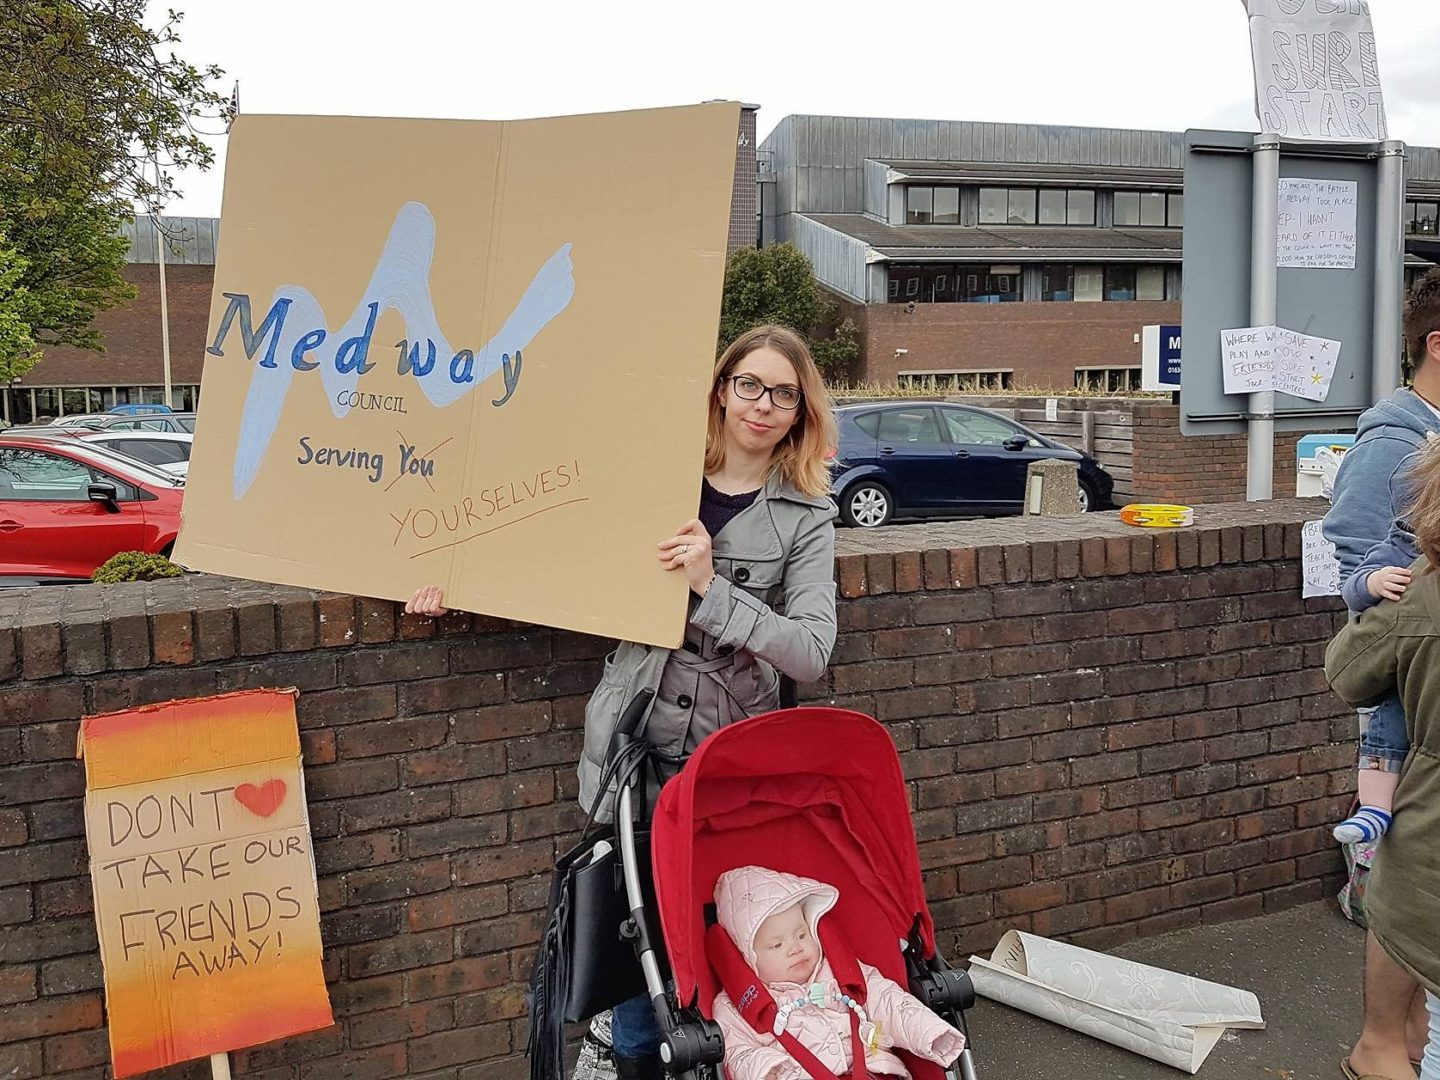 Protest - Medway Council closing Sure Start Centres